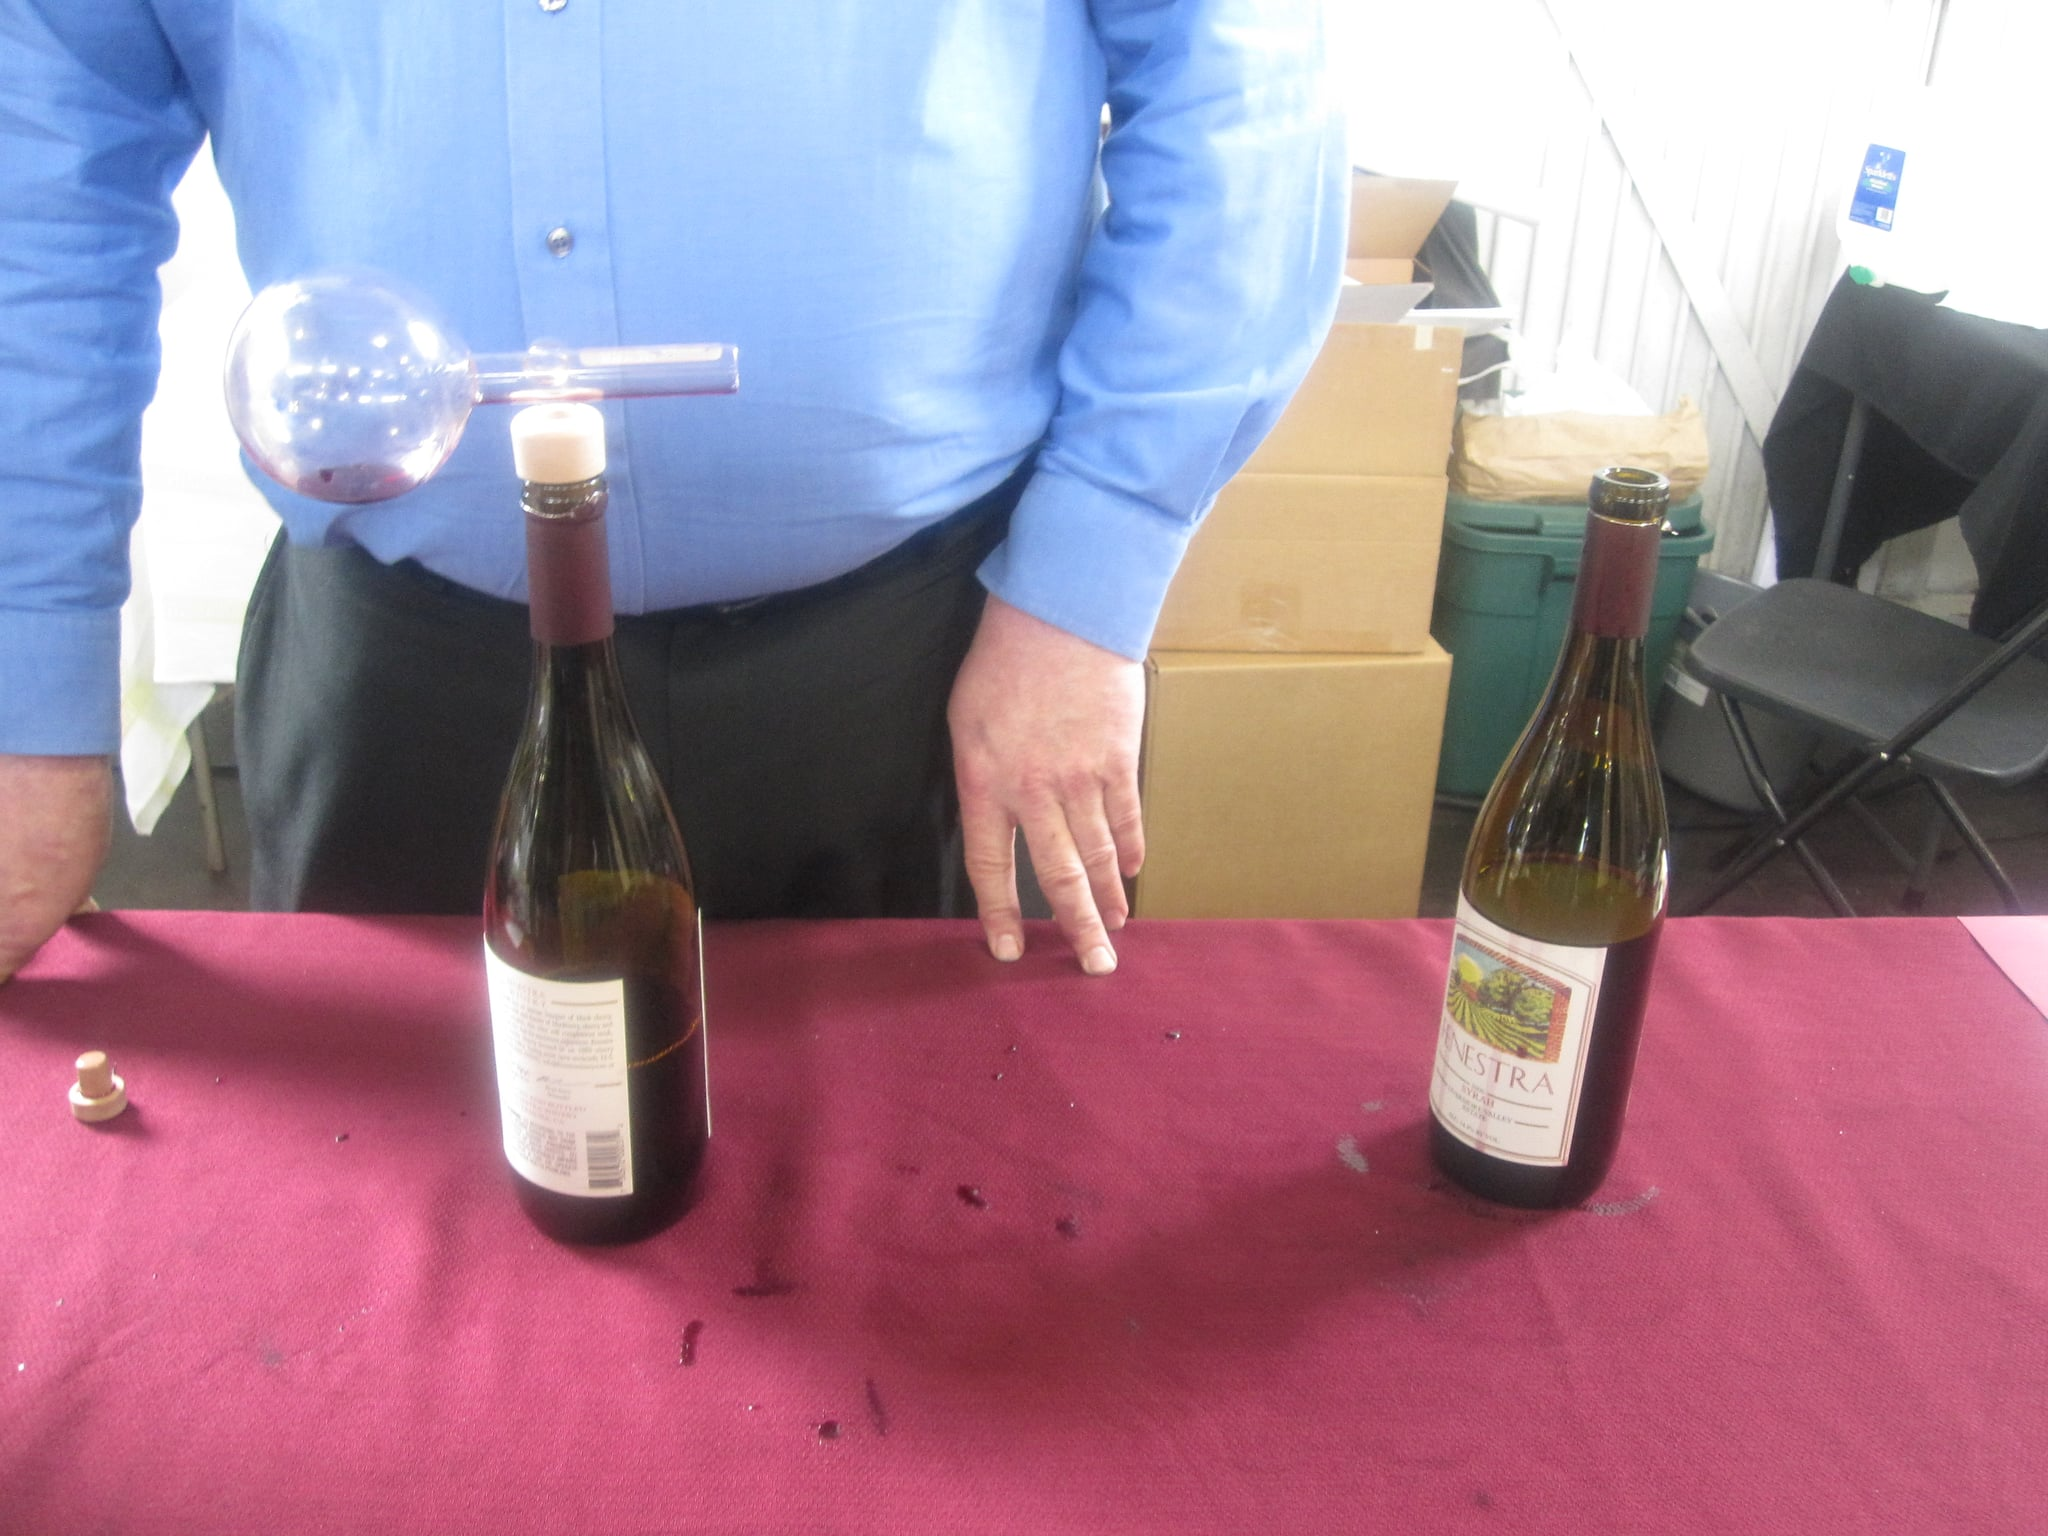 ...but one had been aerated and the other had not. The aerated wine tasted fuller and more balanced.